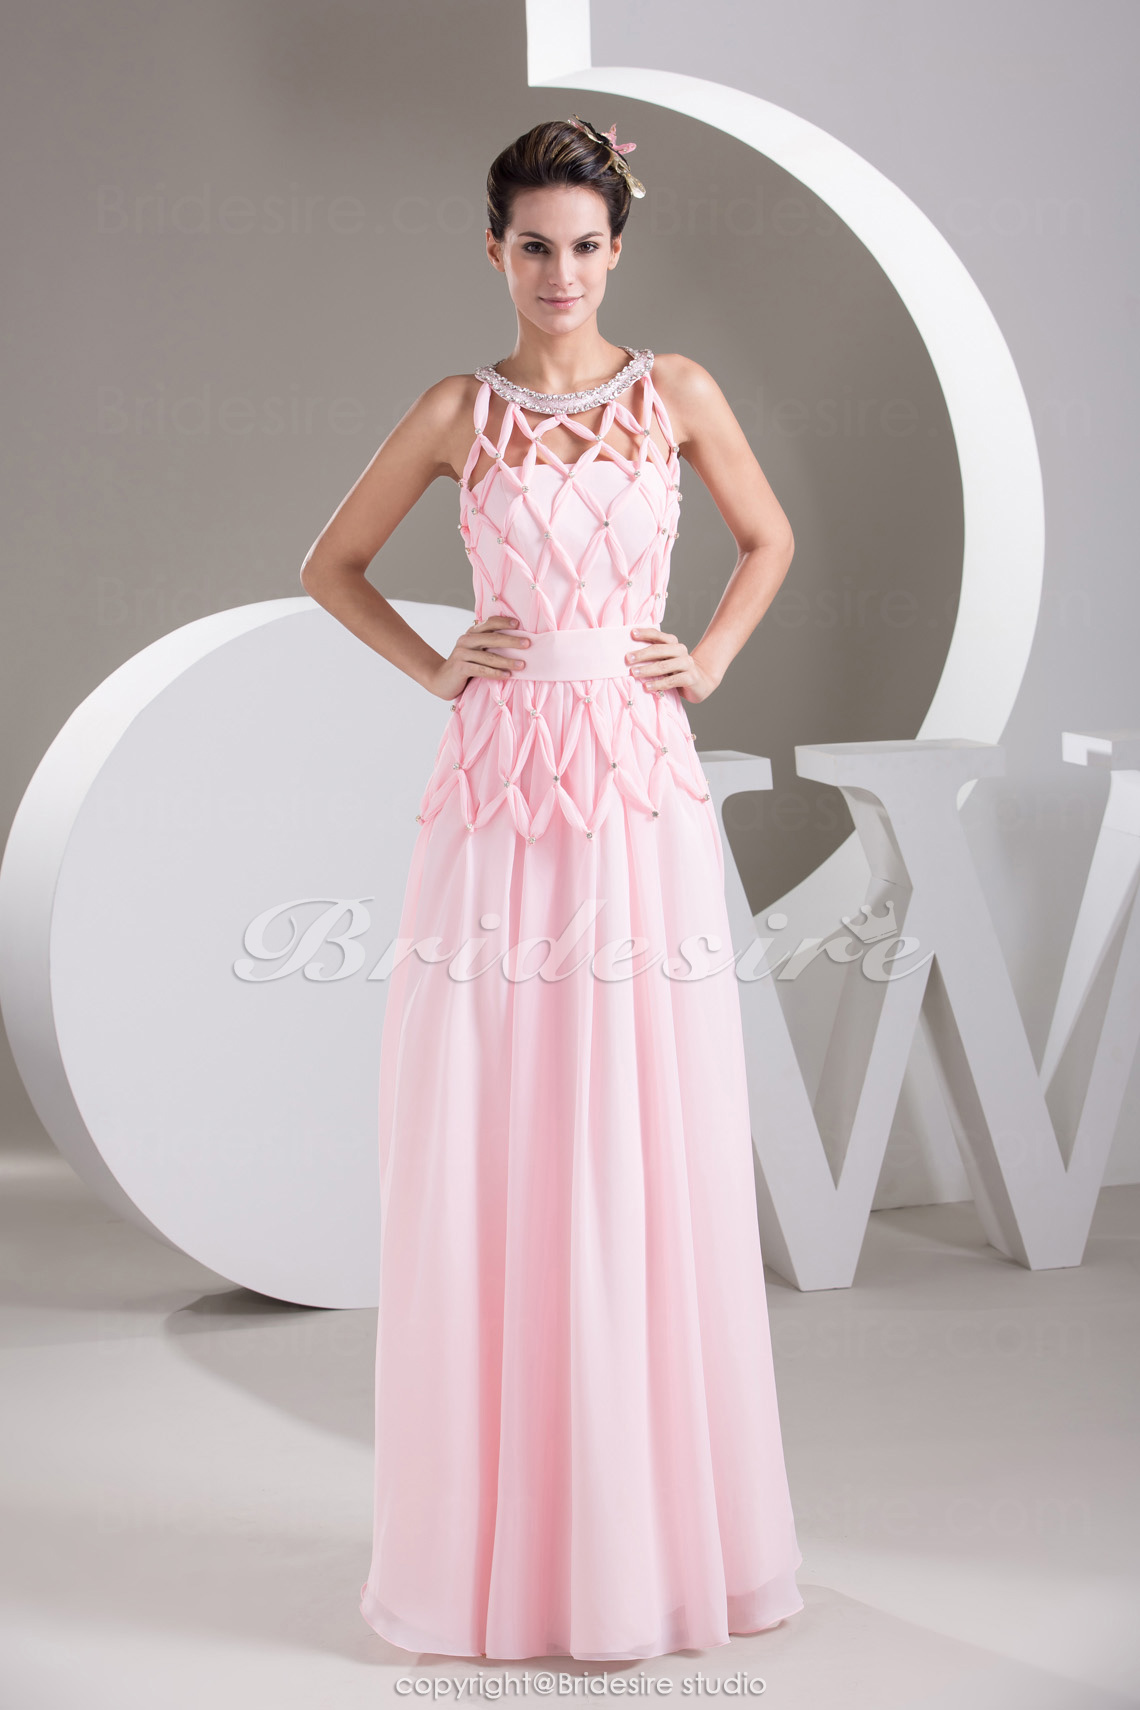 Sheath/Column Scoop Floor-length Sleeveless Chiffon Dress